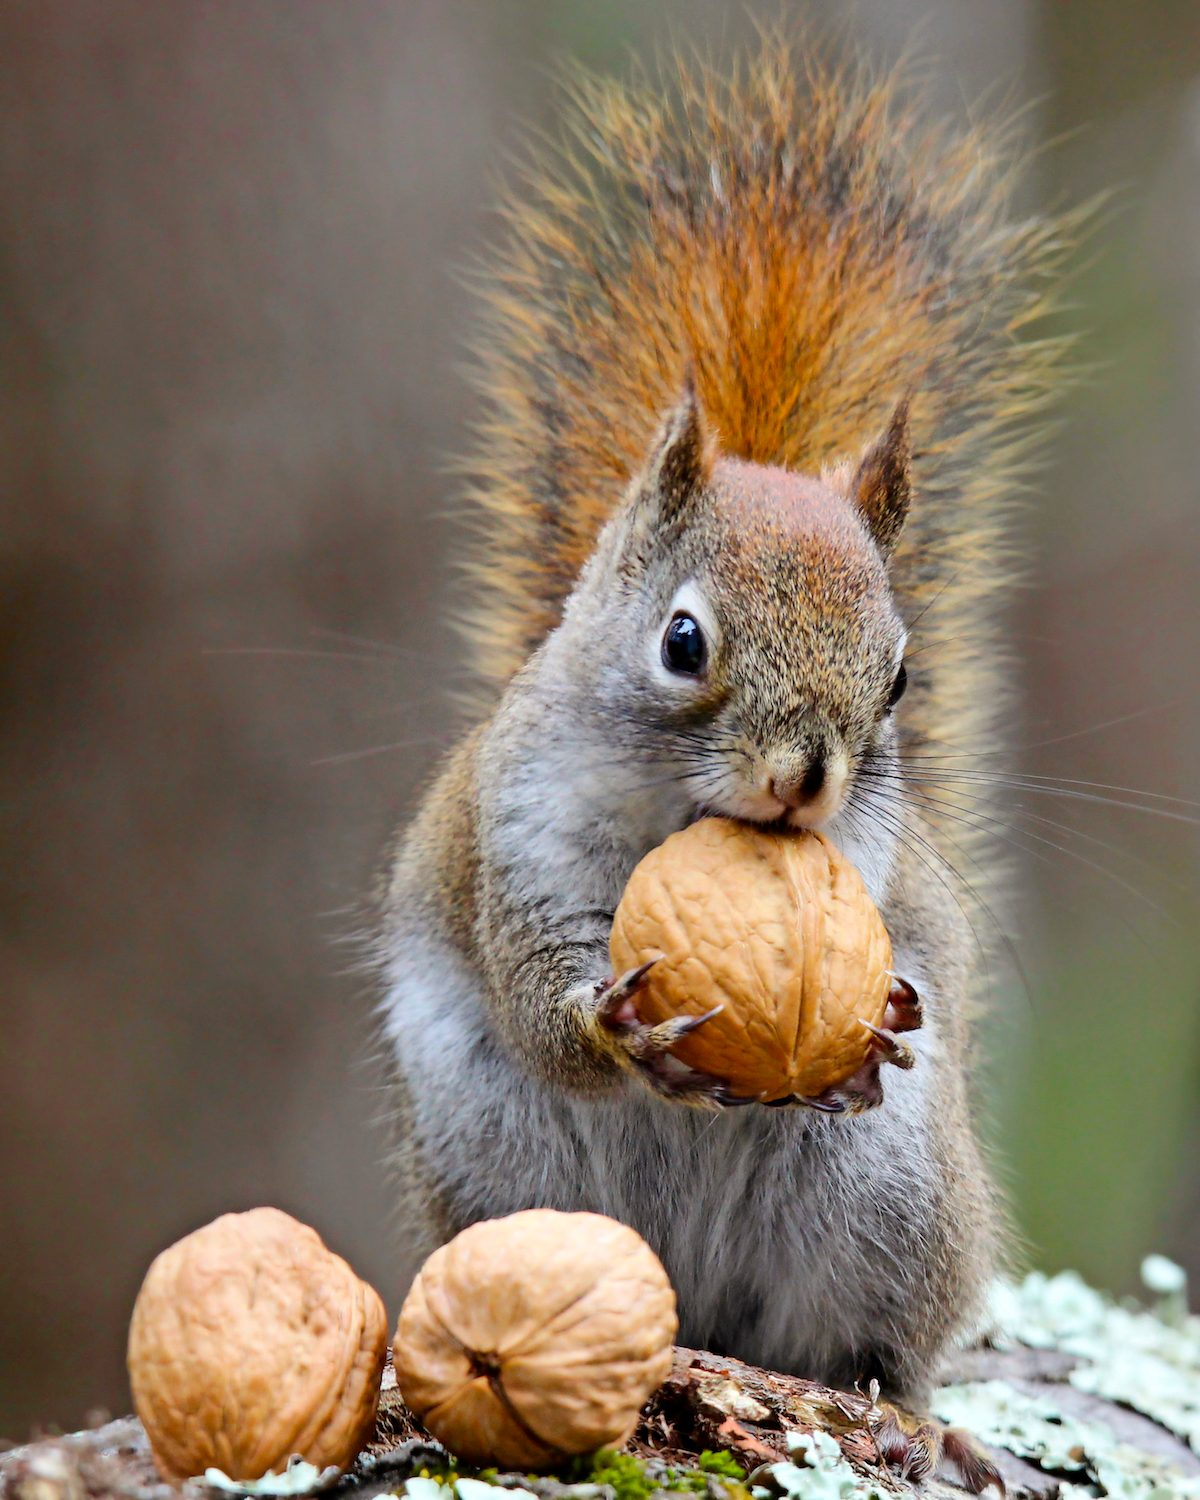 An American red squirrel holding a nut in its paws.